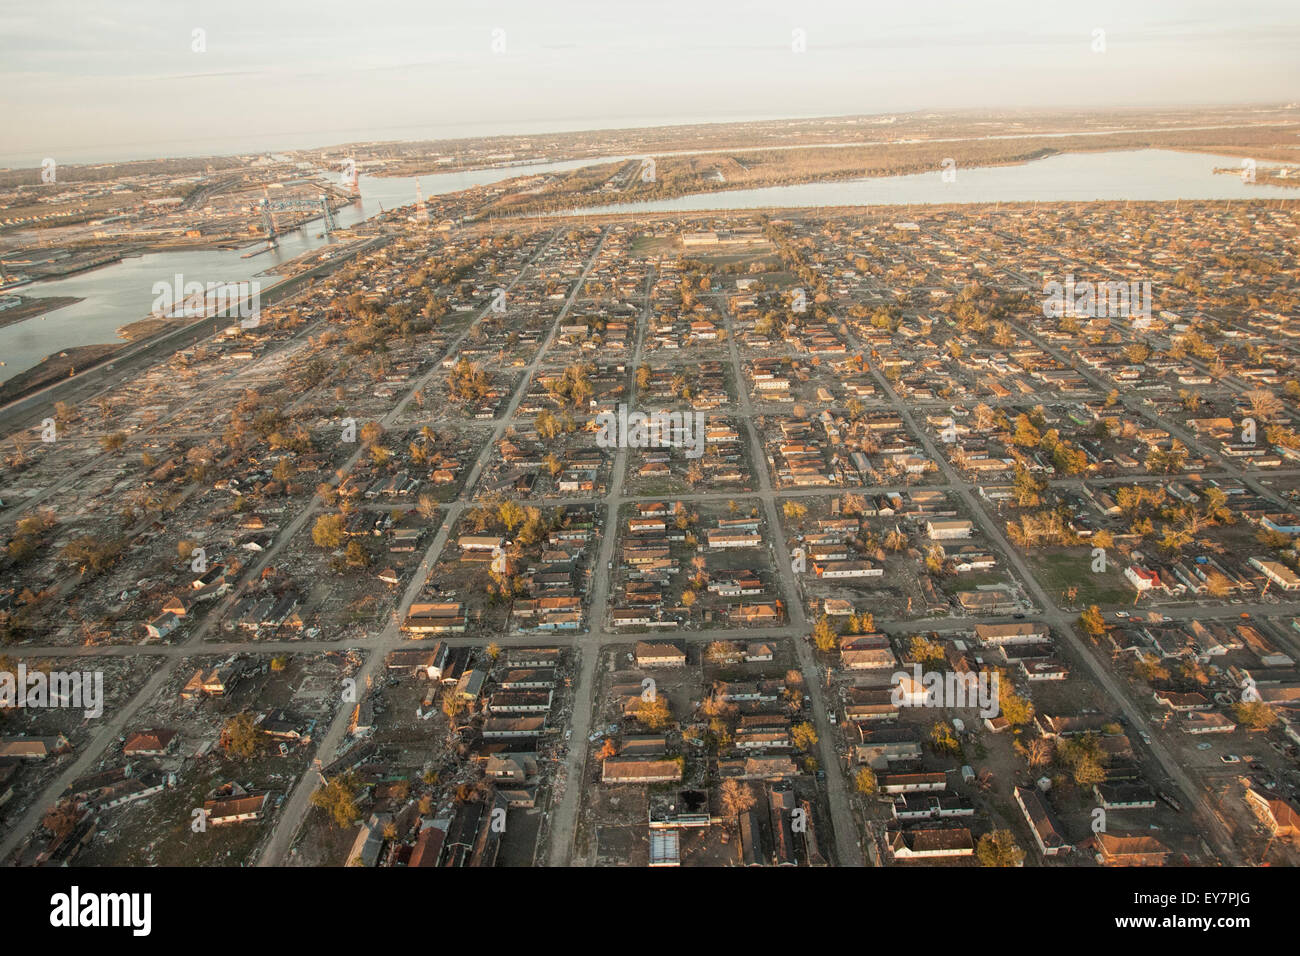 Aerial view of aftermath of Hurricane Katrina in New Orleans' Lower 9th Ward. - Stock Image